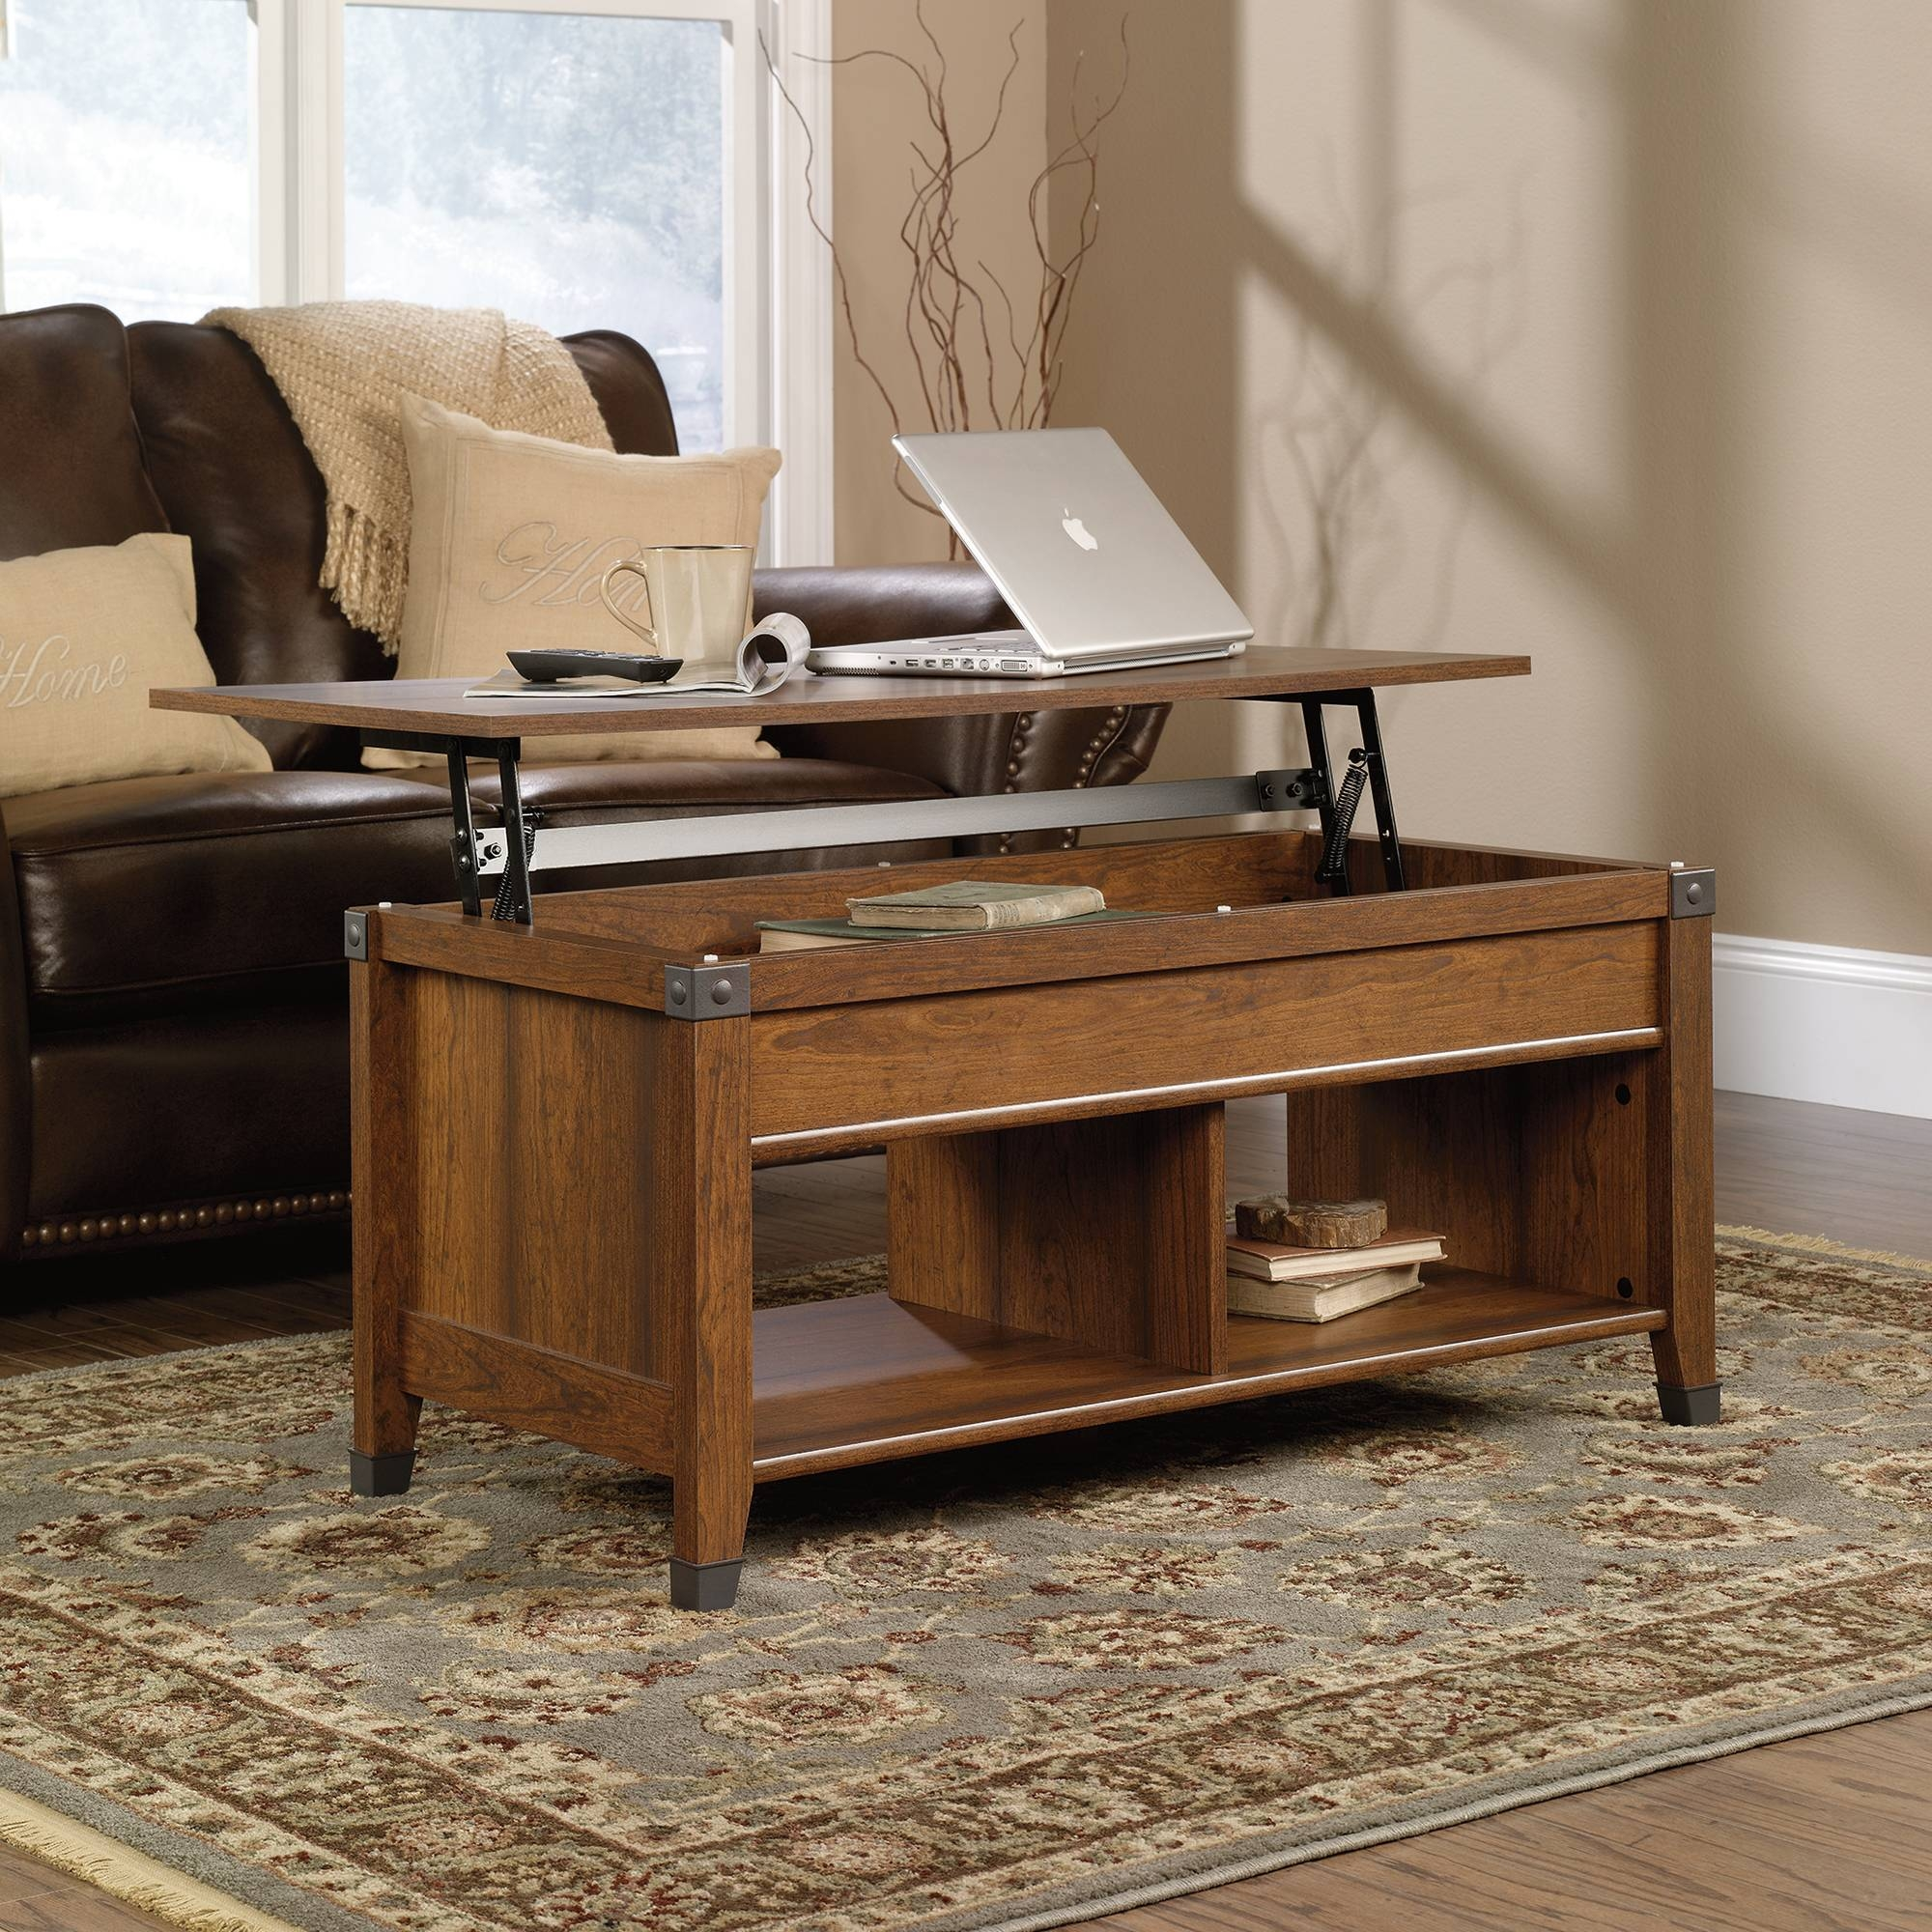 Carson Forge | Lift-Top Coffee Table | 414444 | Sauder within Waverly Lift Top Coffee Tables (Image 8 of 30)